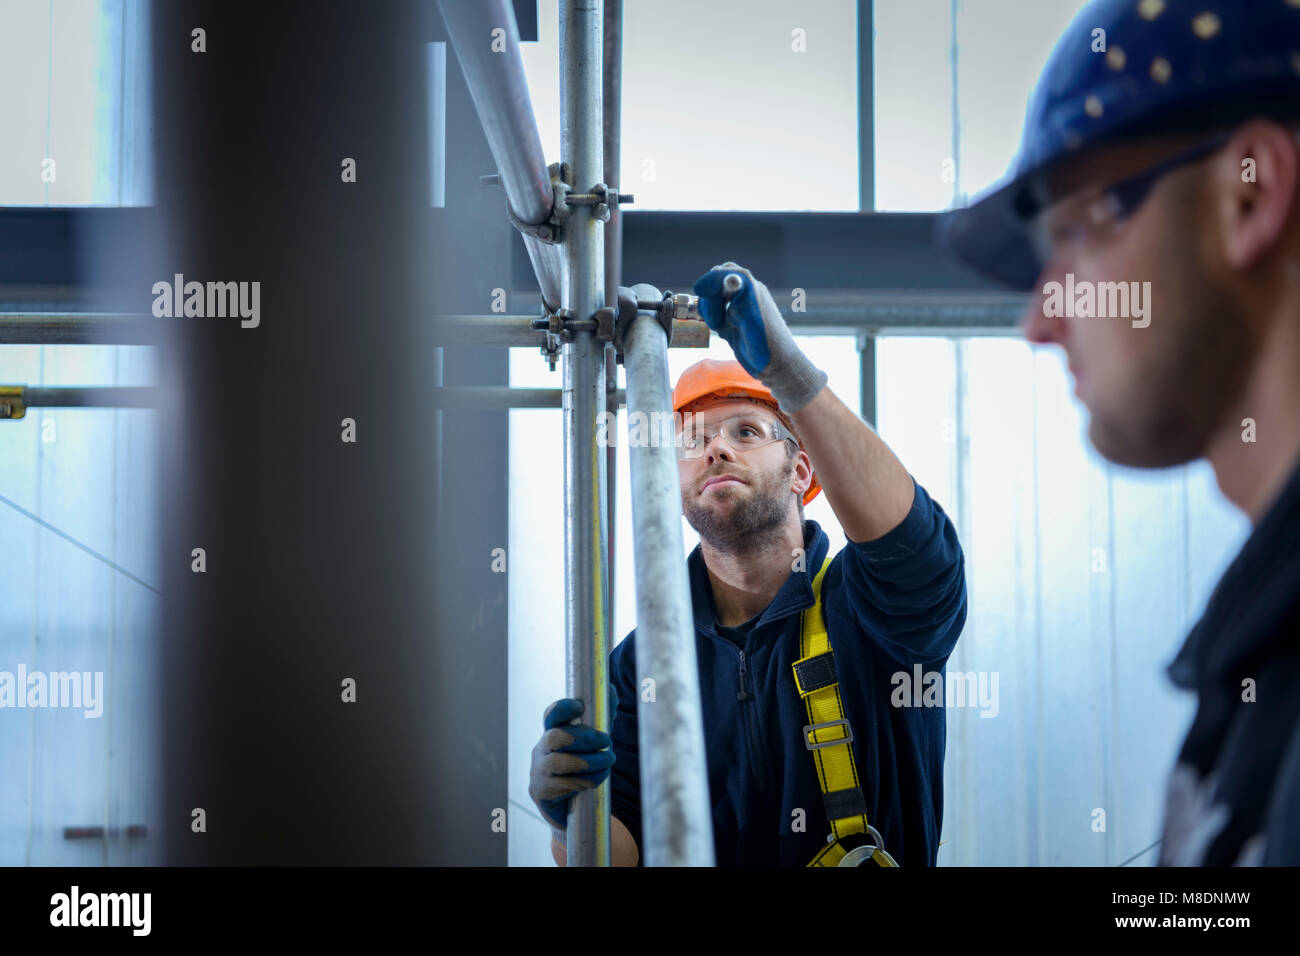 Apprentice engineers preparing and setting up scaffolding - Stock Image